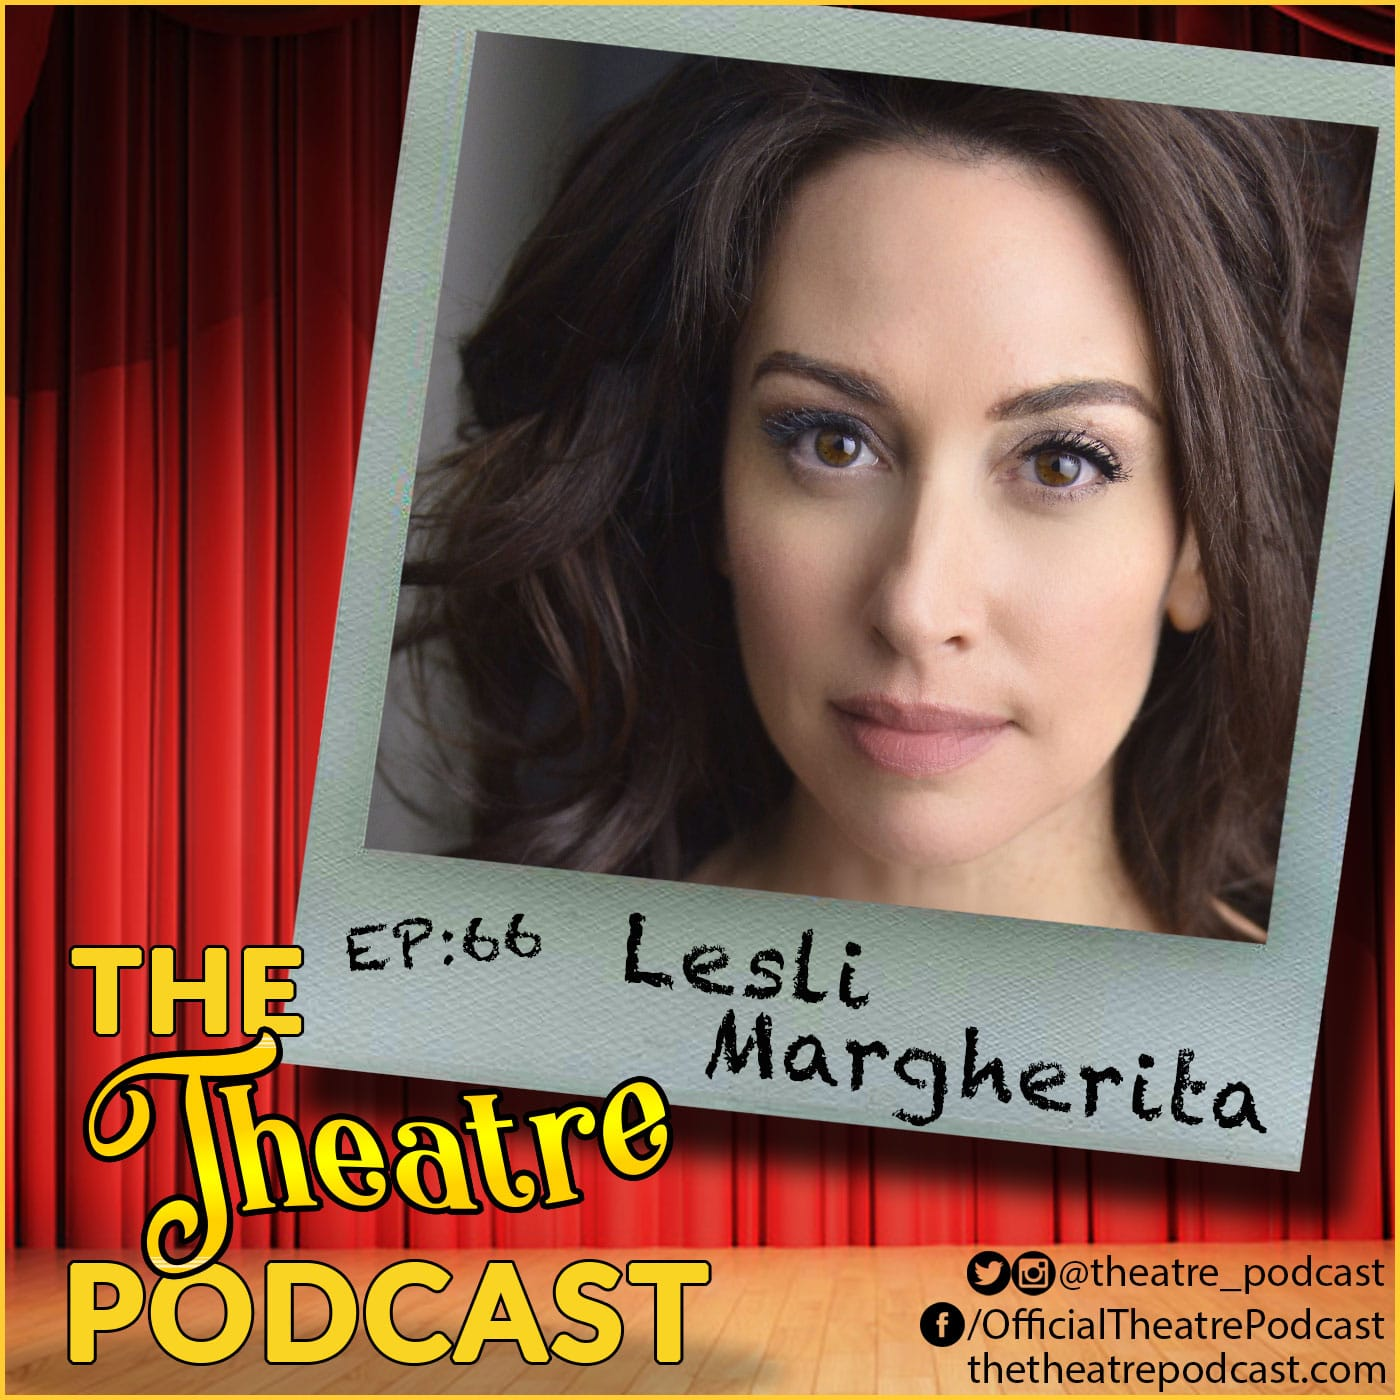 The Theatre Podcast Episode 66 Lesli Margherita